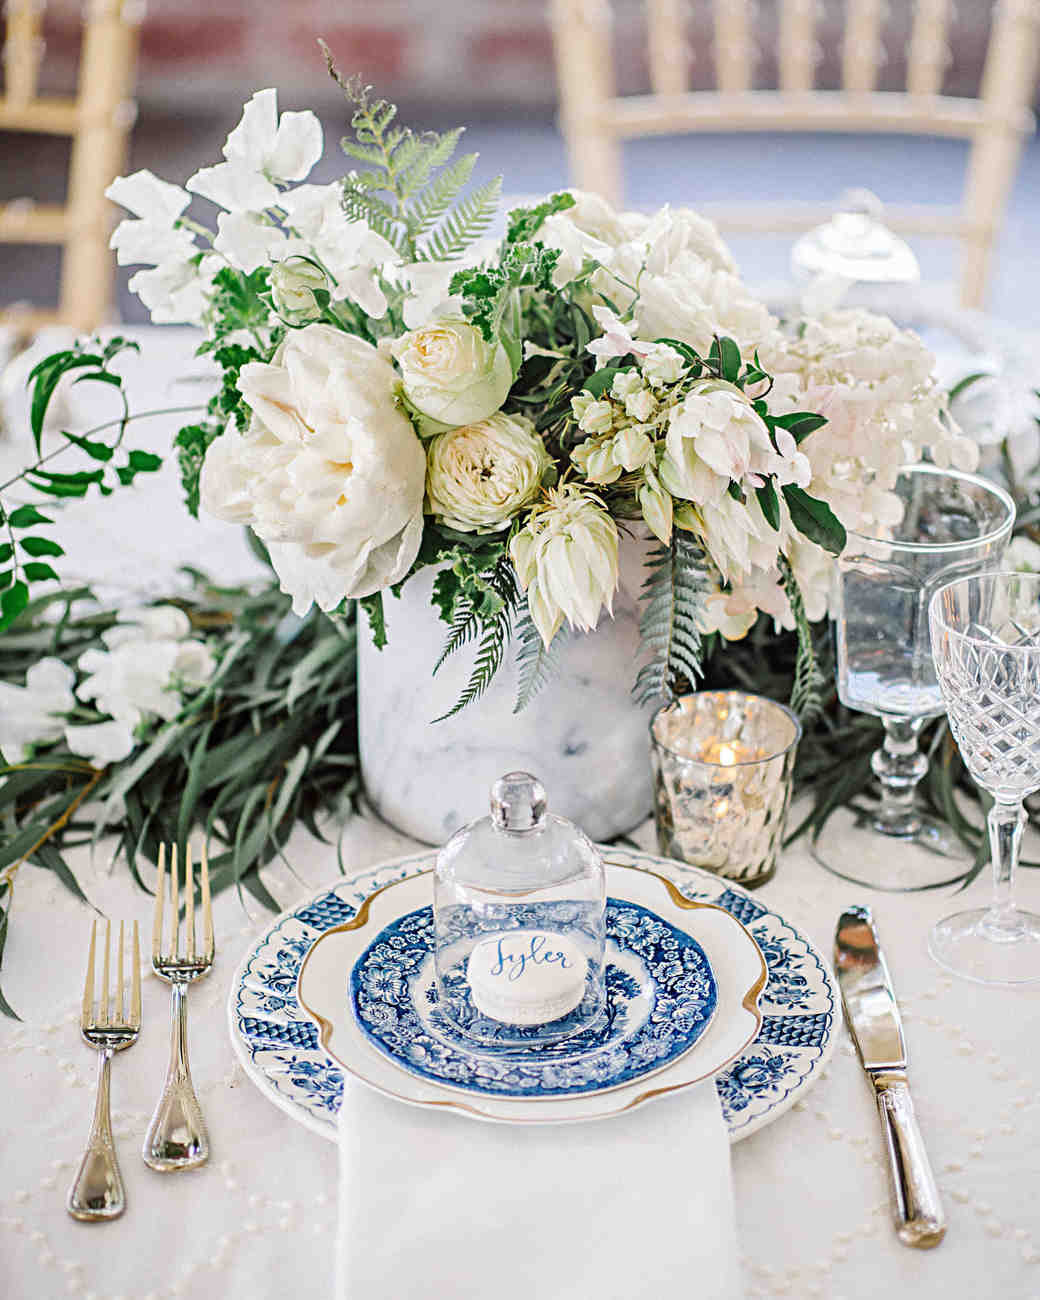 14 attractive Tiffany Tulip Vase Price 2021 free download tiffany tulip vase price of 79 white wedding centerpieces martha stewart weddings in hannah steve wedding california china macarons